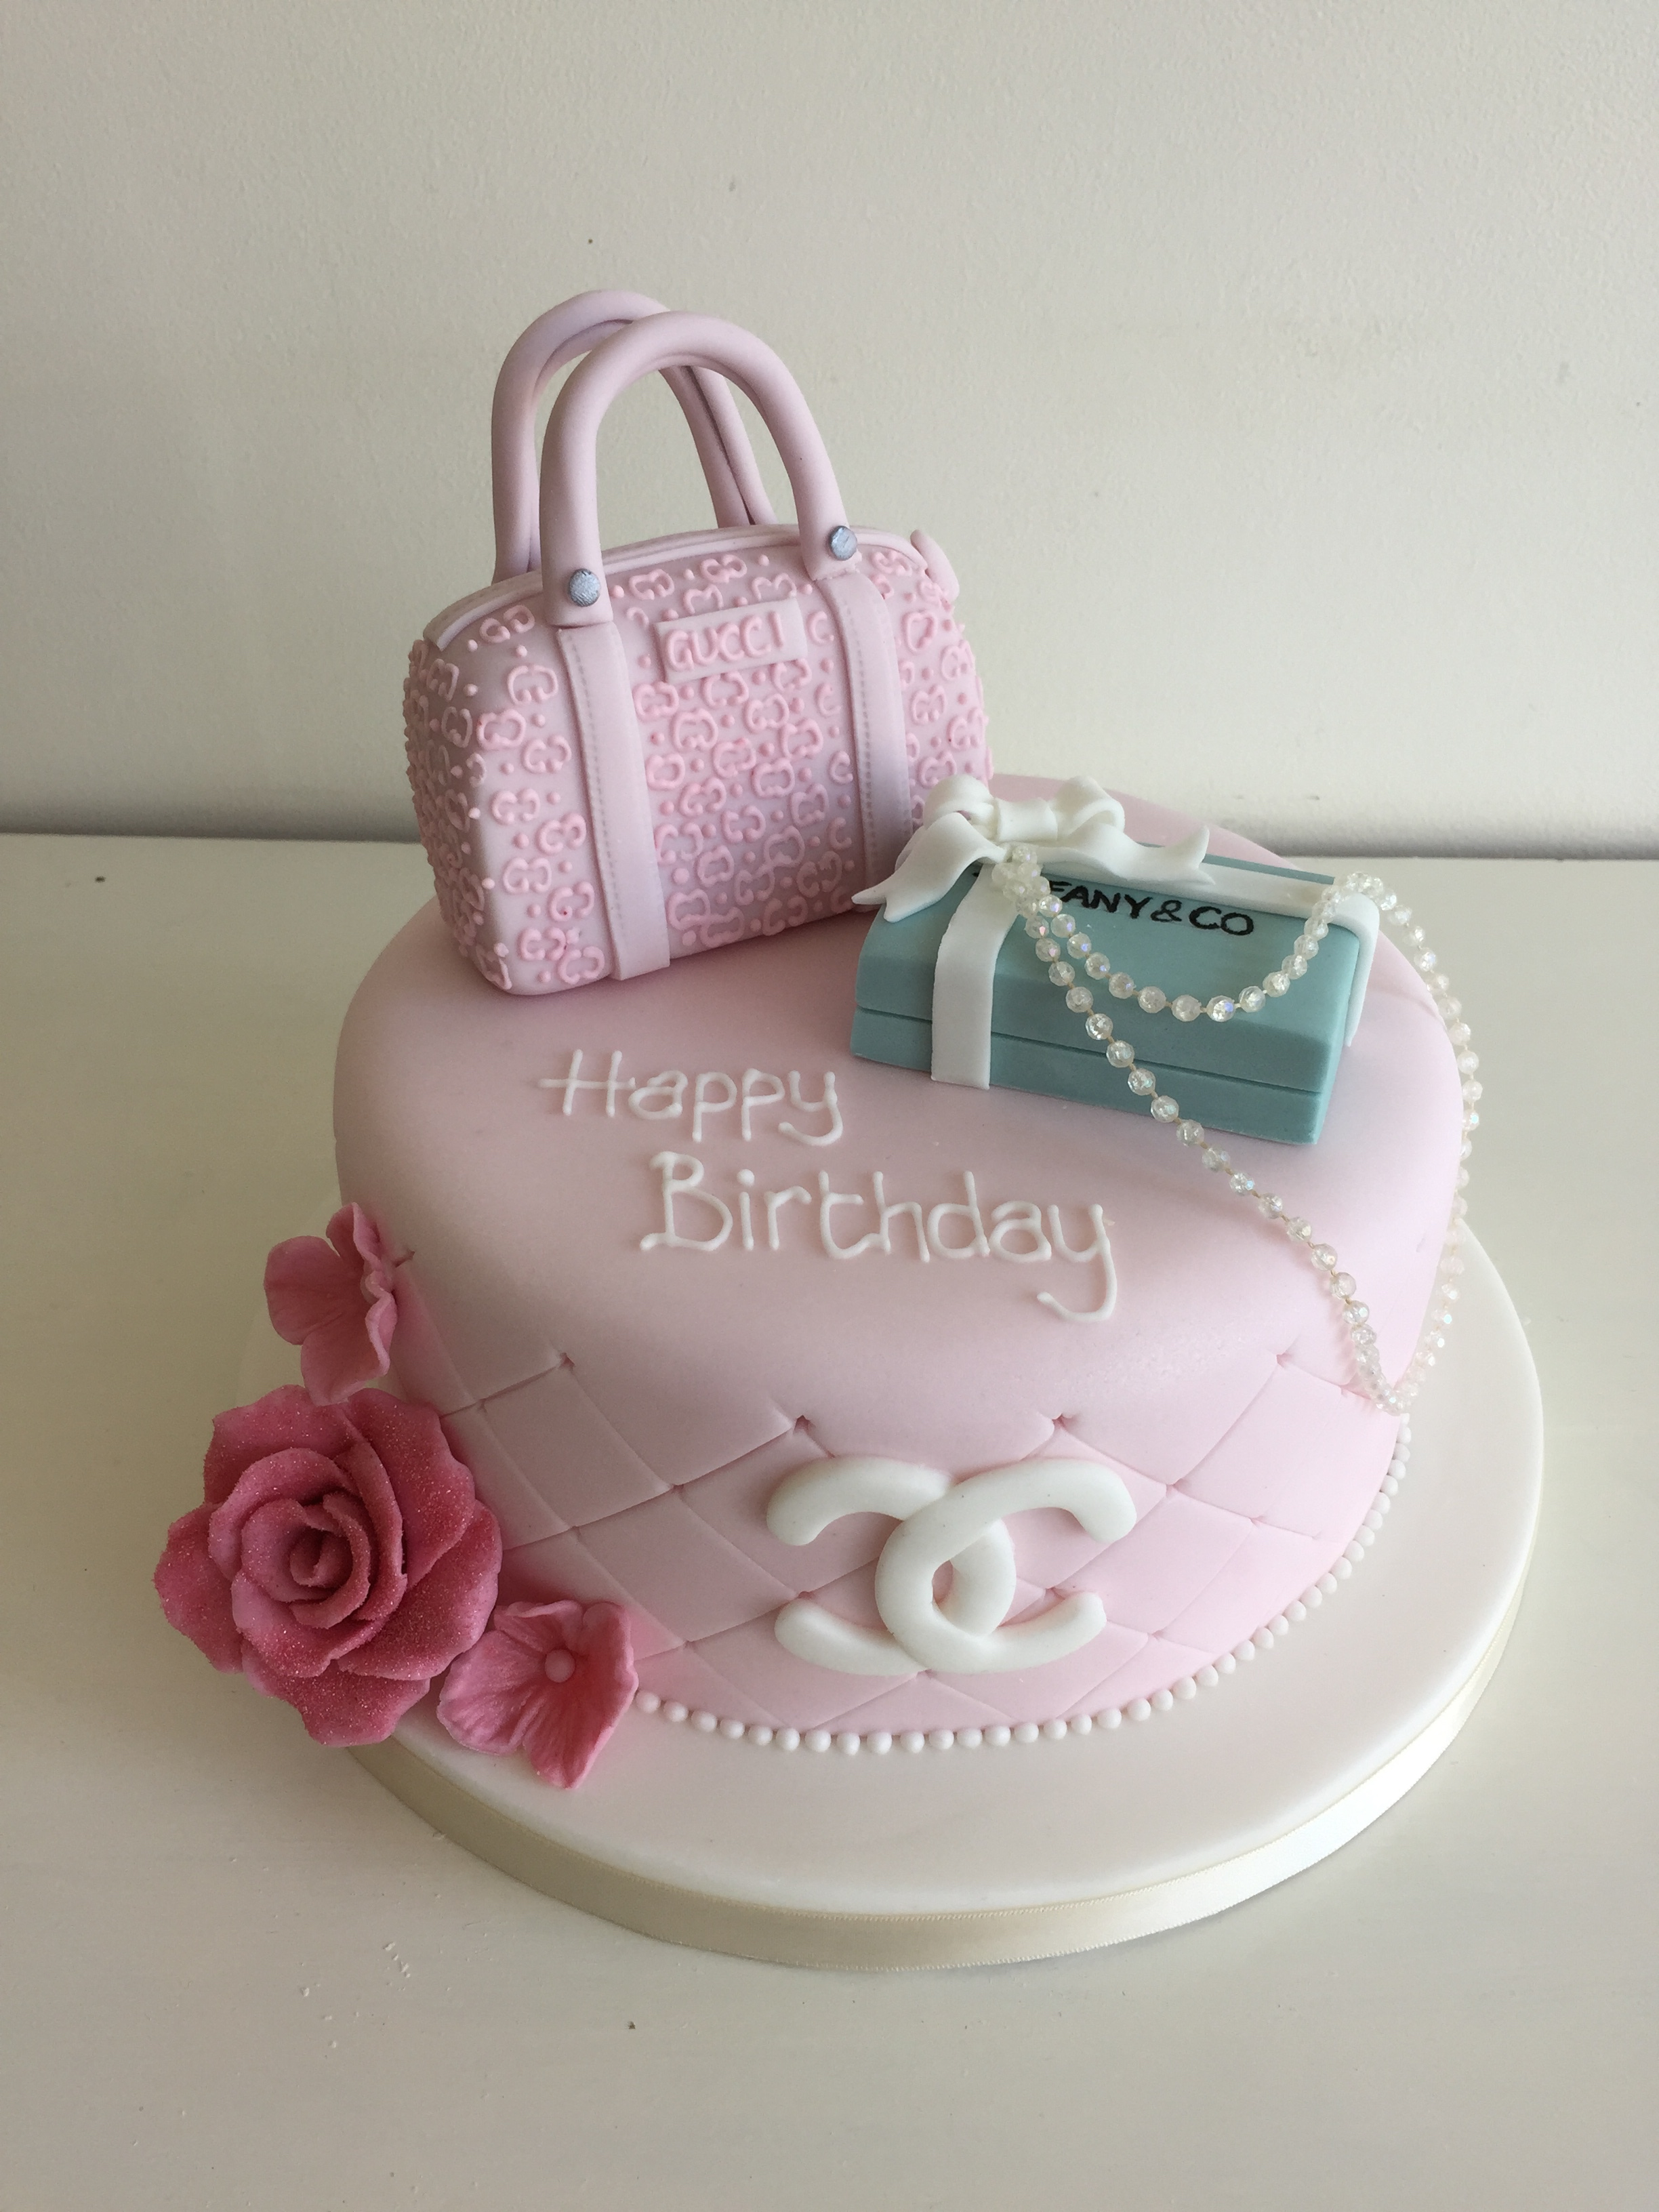 Female Birthday Cakes Bedfordshire Hertfordshire London